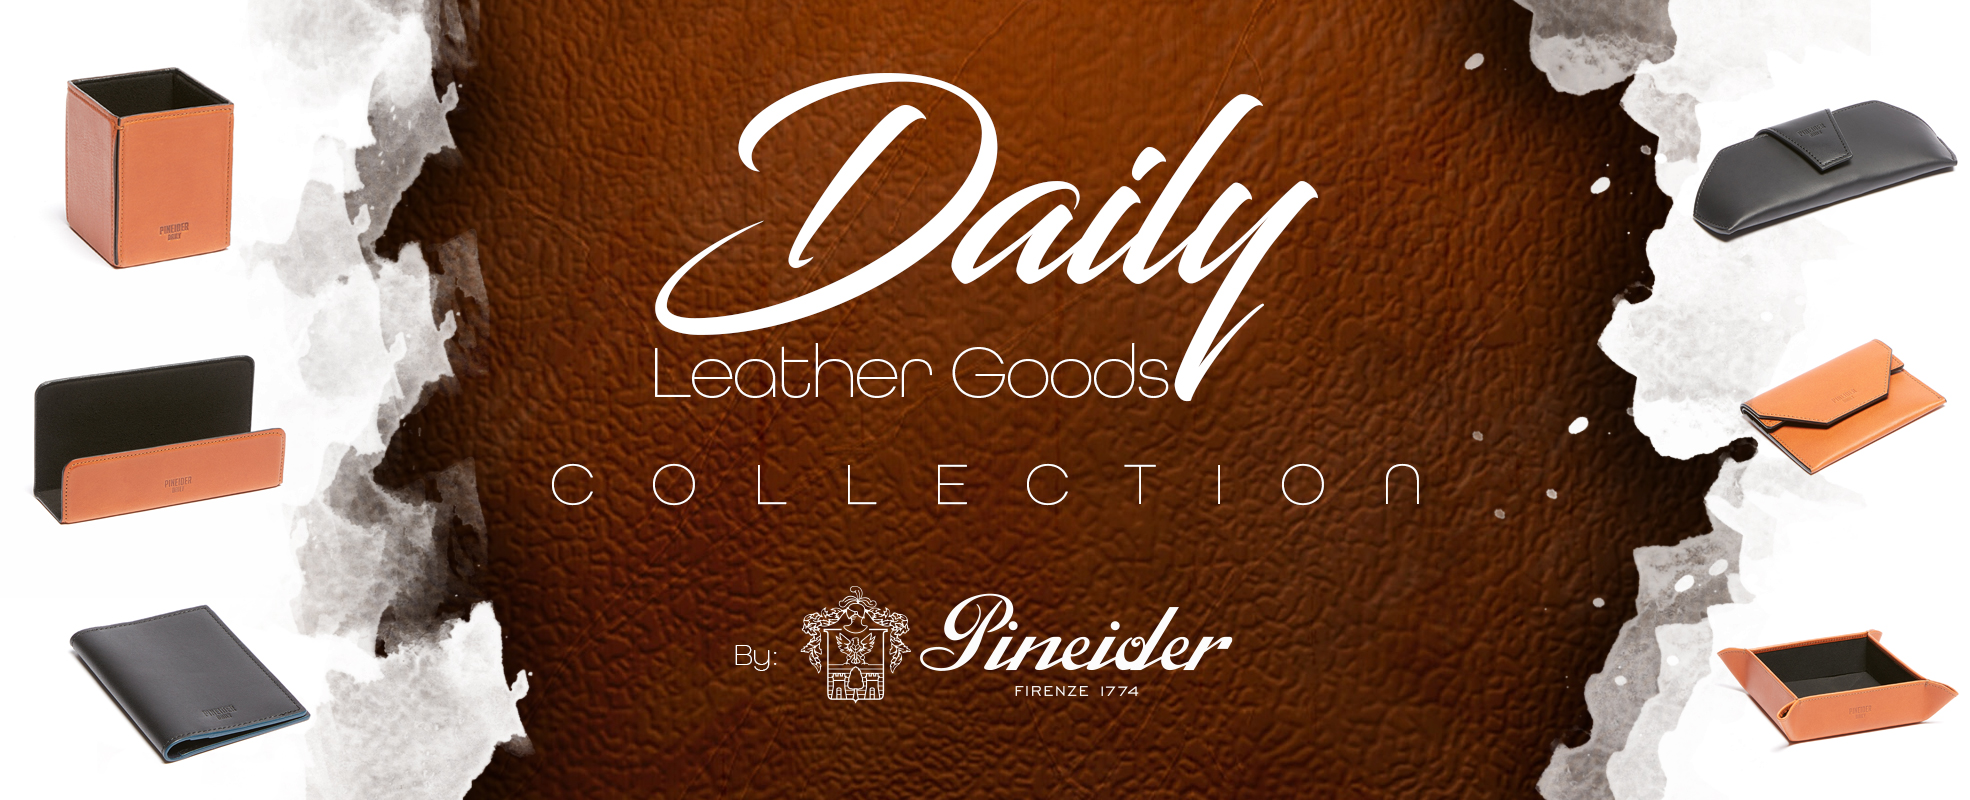 daily-leather-banner.jpg